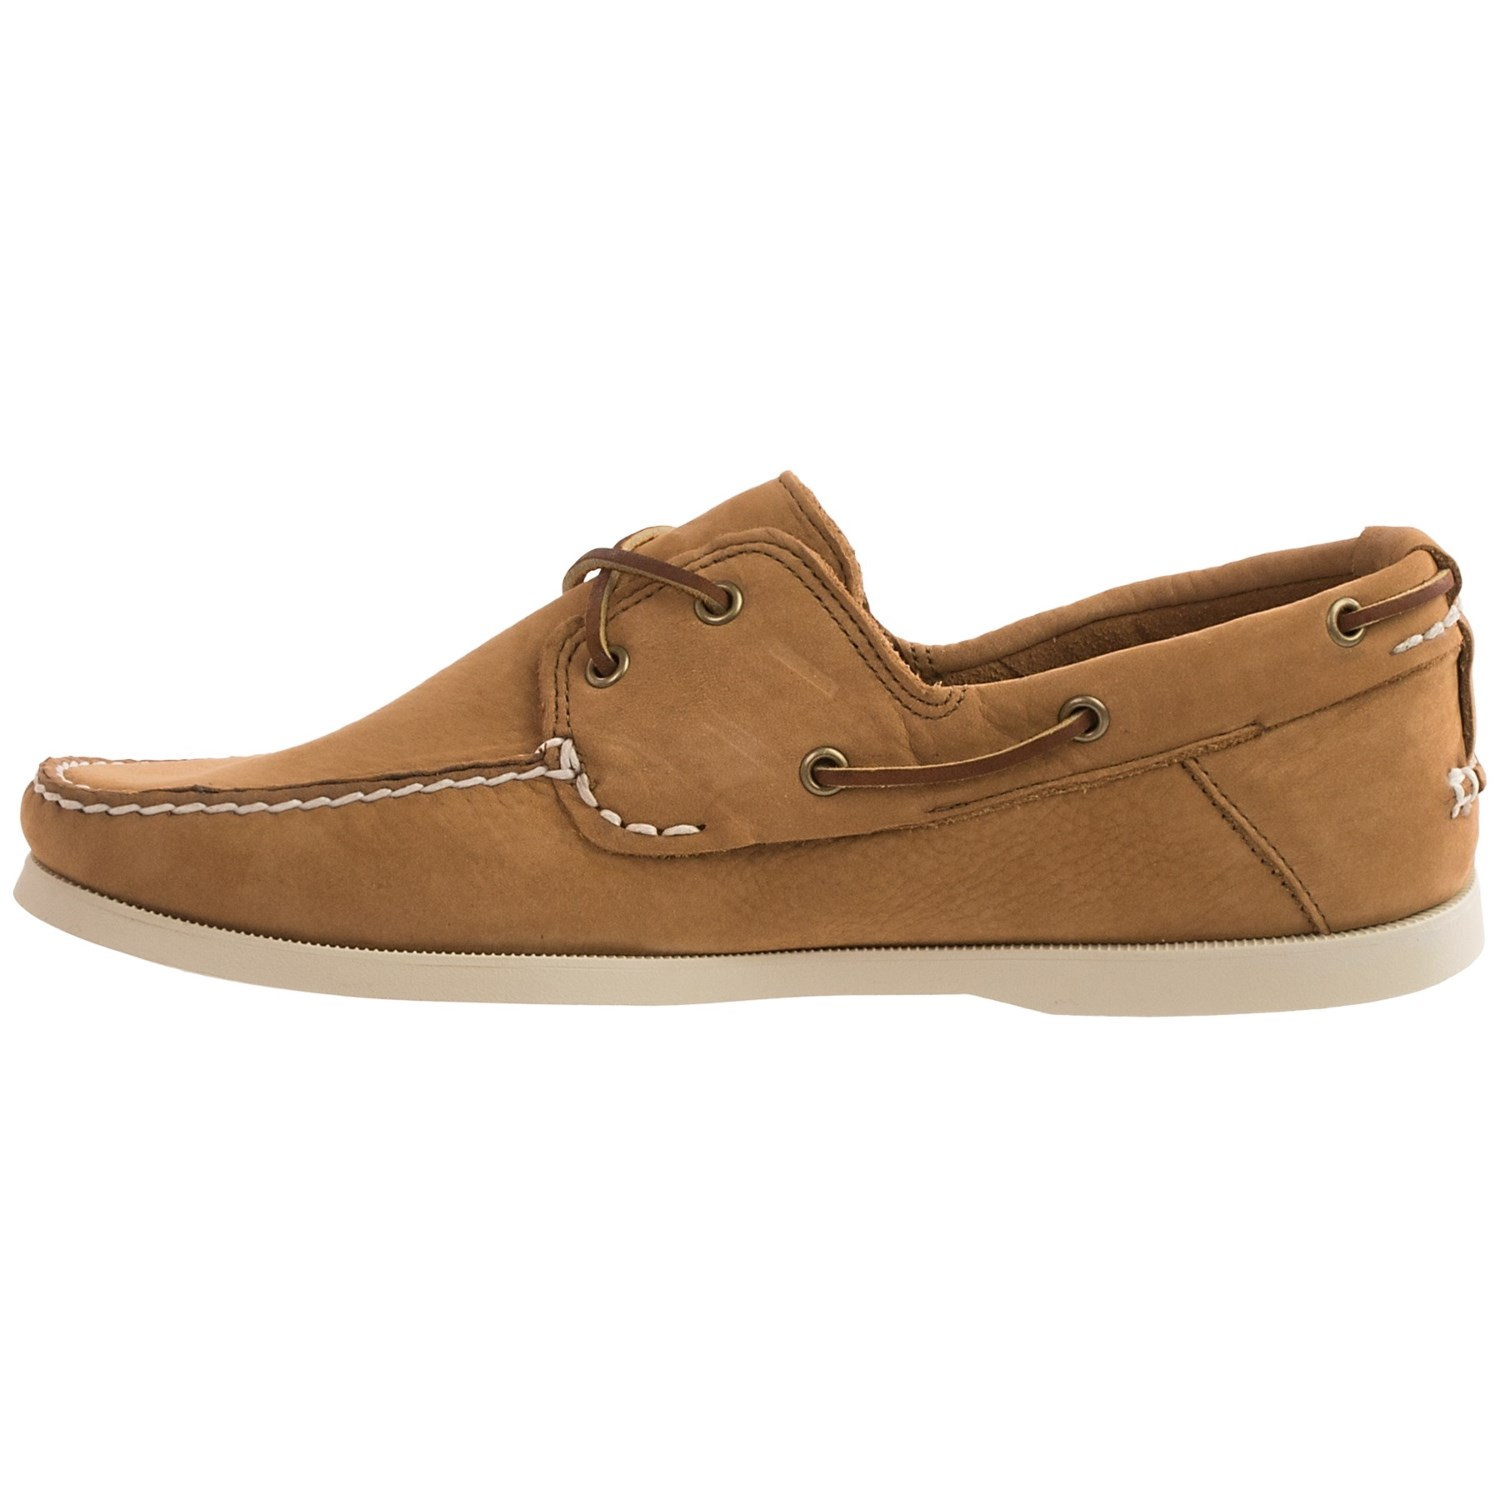 Timberland Heritage Boat Shoes Review